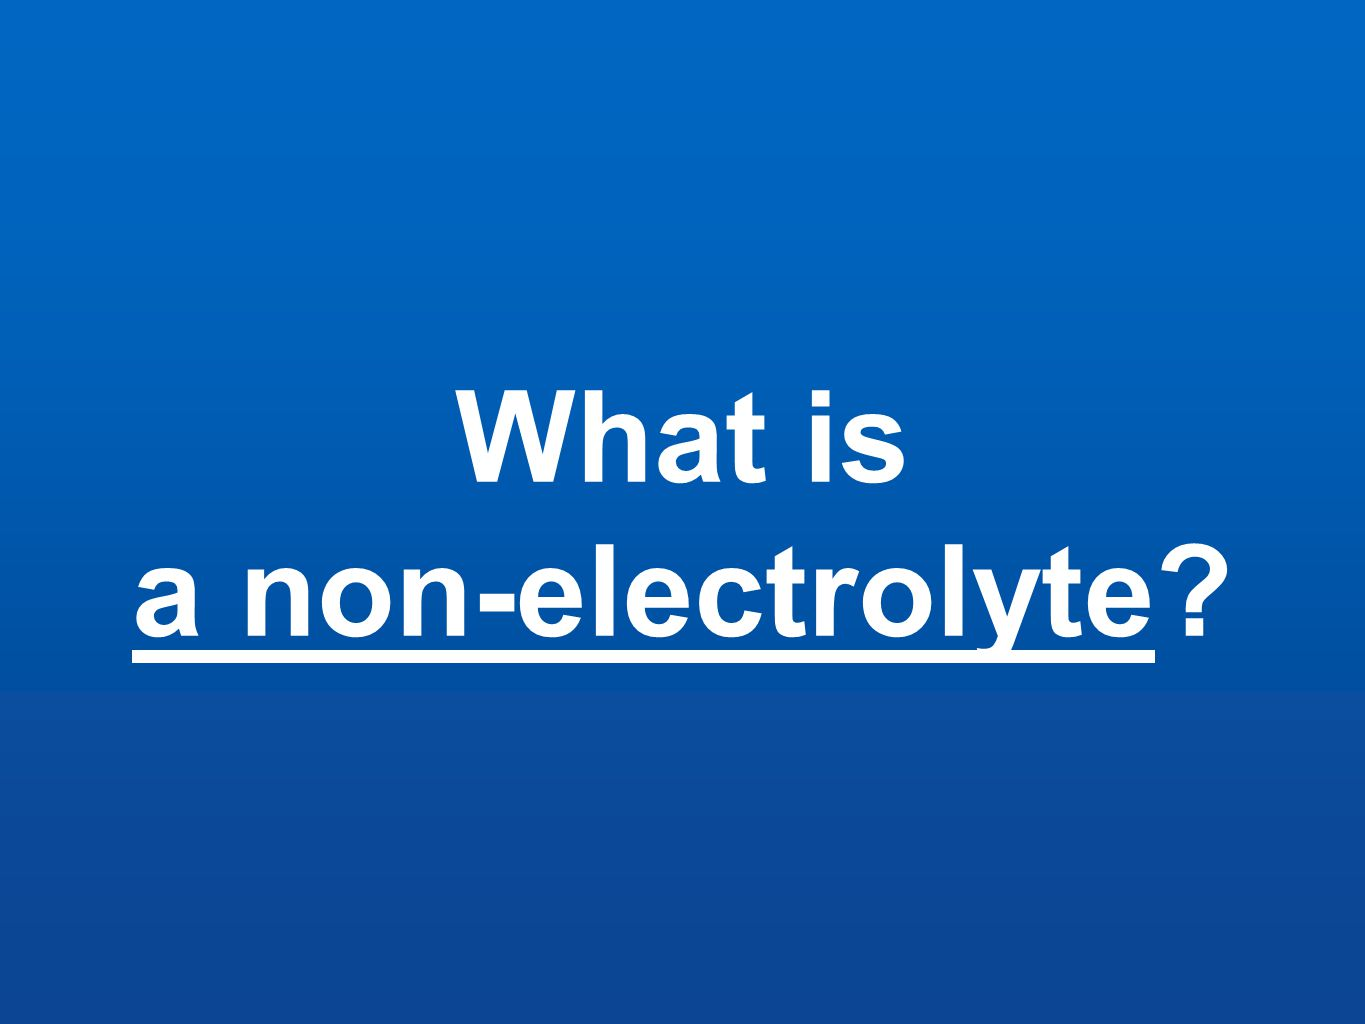 What is a non-electrolyte?